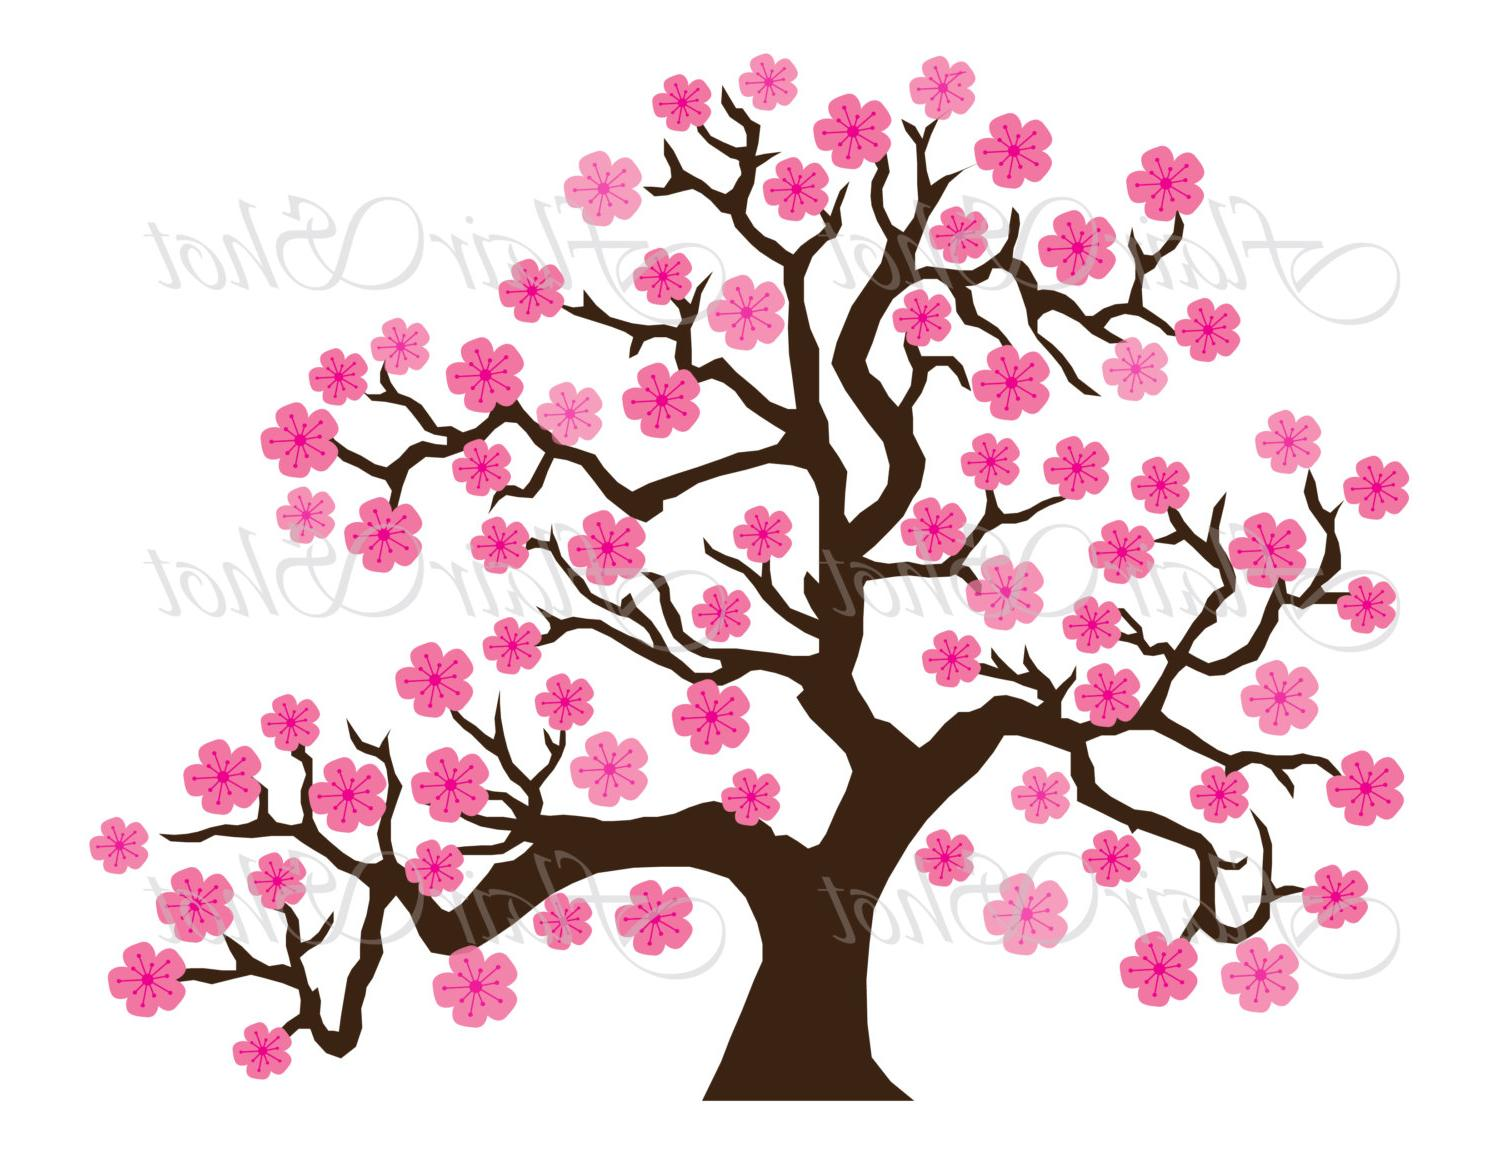 Cartoon cherry blossom clipart jpg free Cartoon Cherry Blossom Tree Clipart | Free download best Cartoon ... jpg free